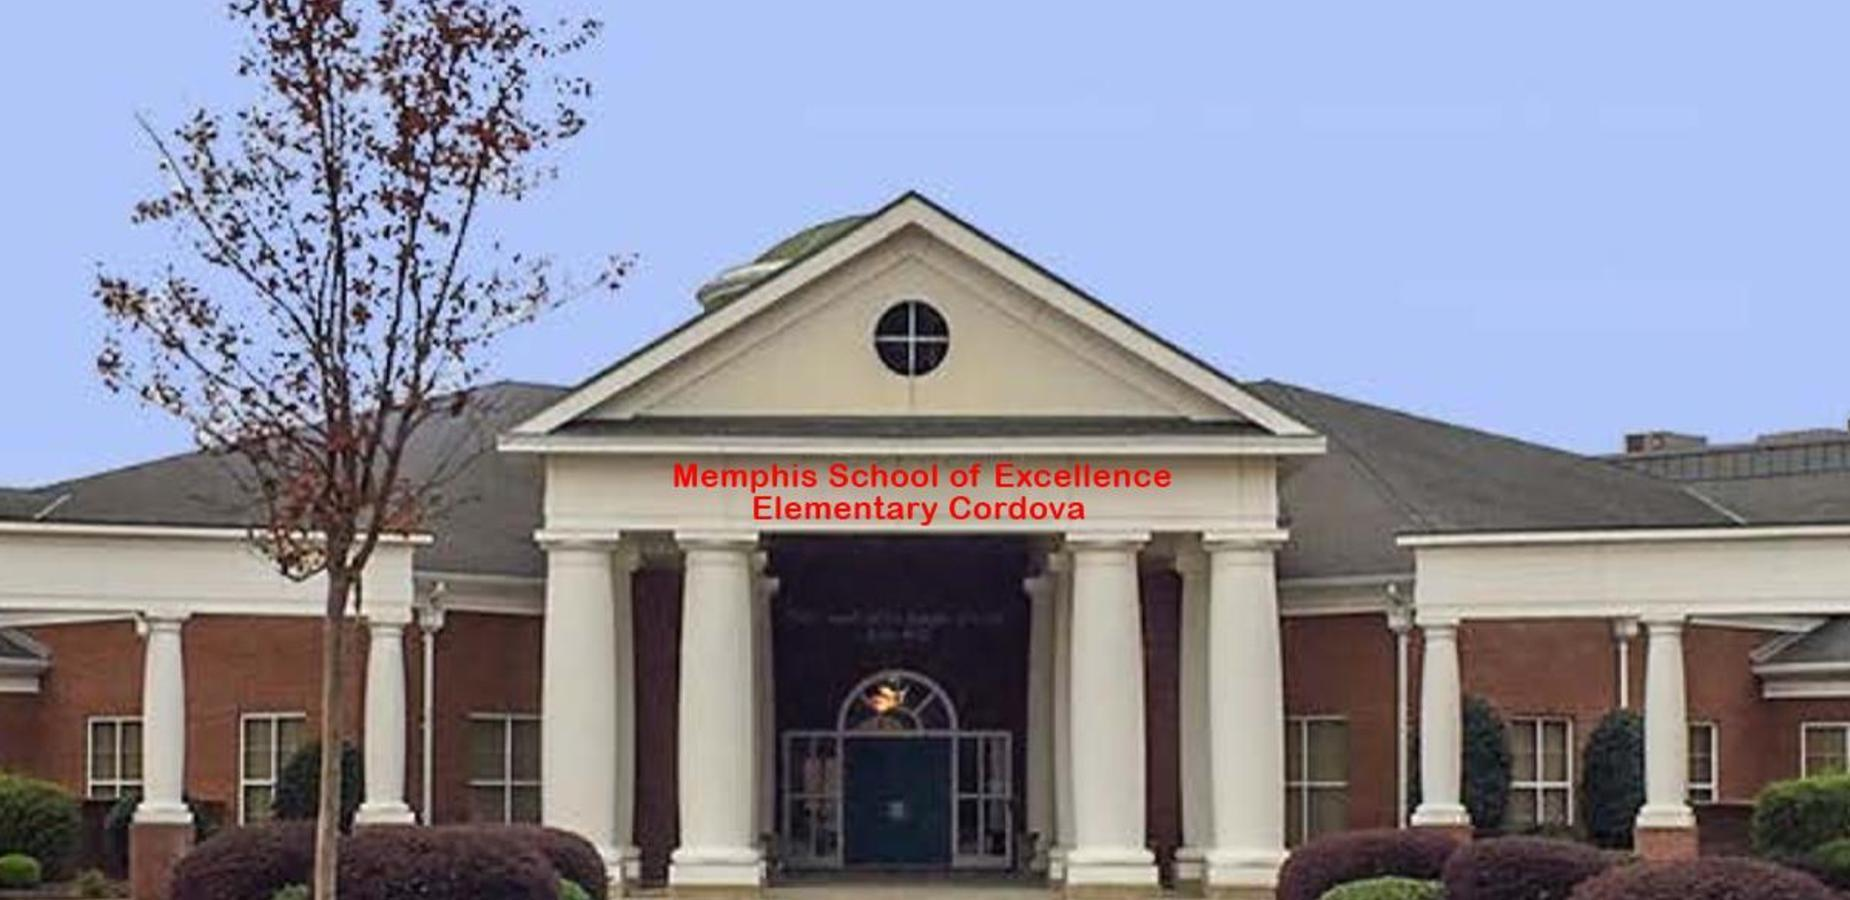 Memphis School of Excellence Elementary Cordova